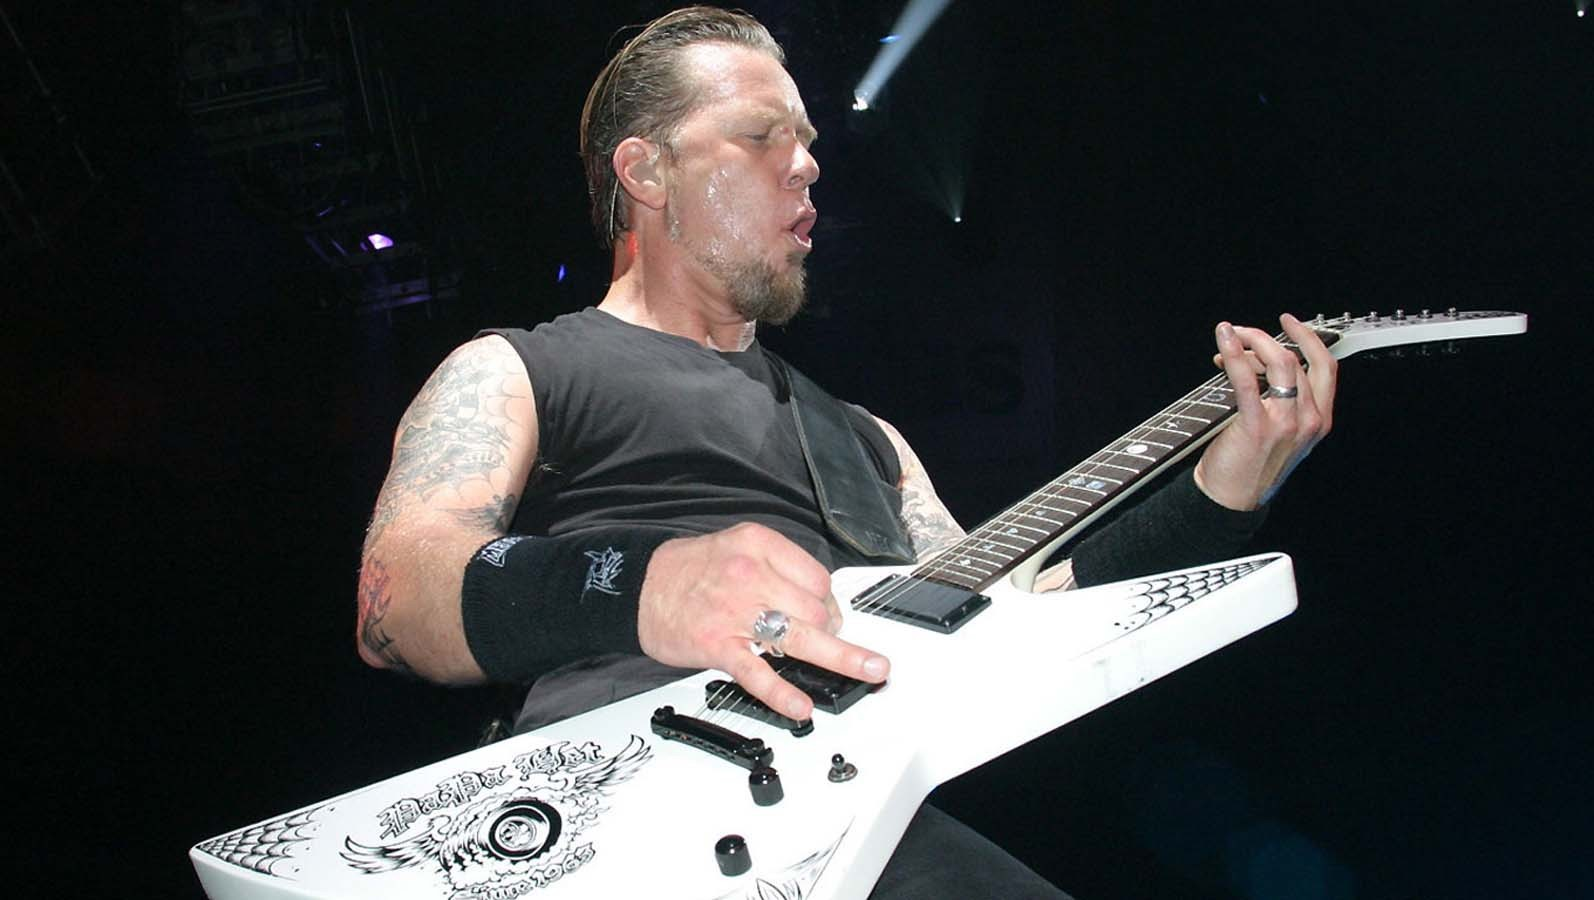 James Hetfield Wallpaper